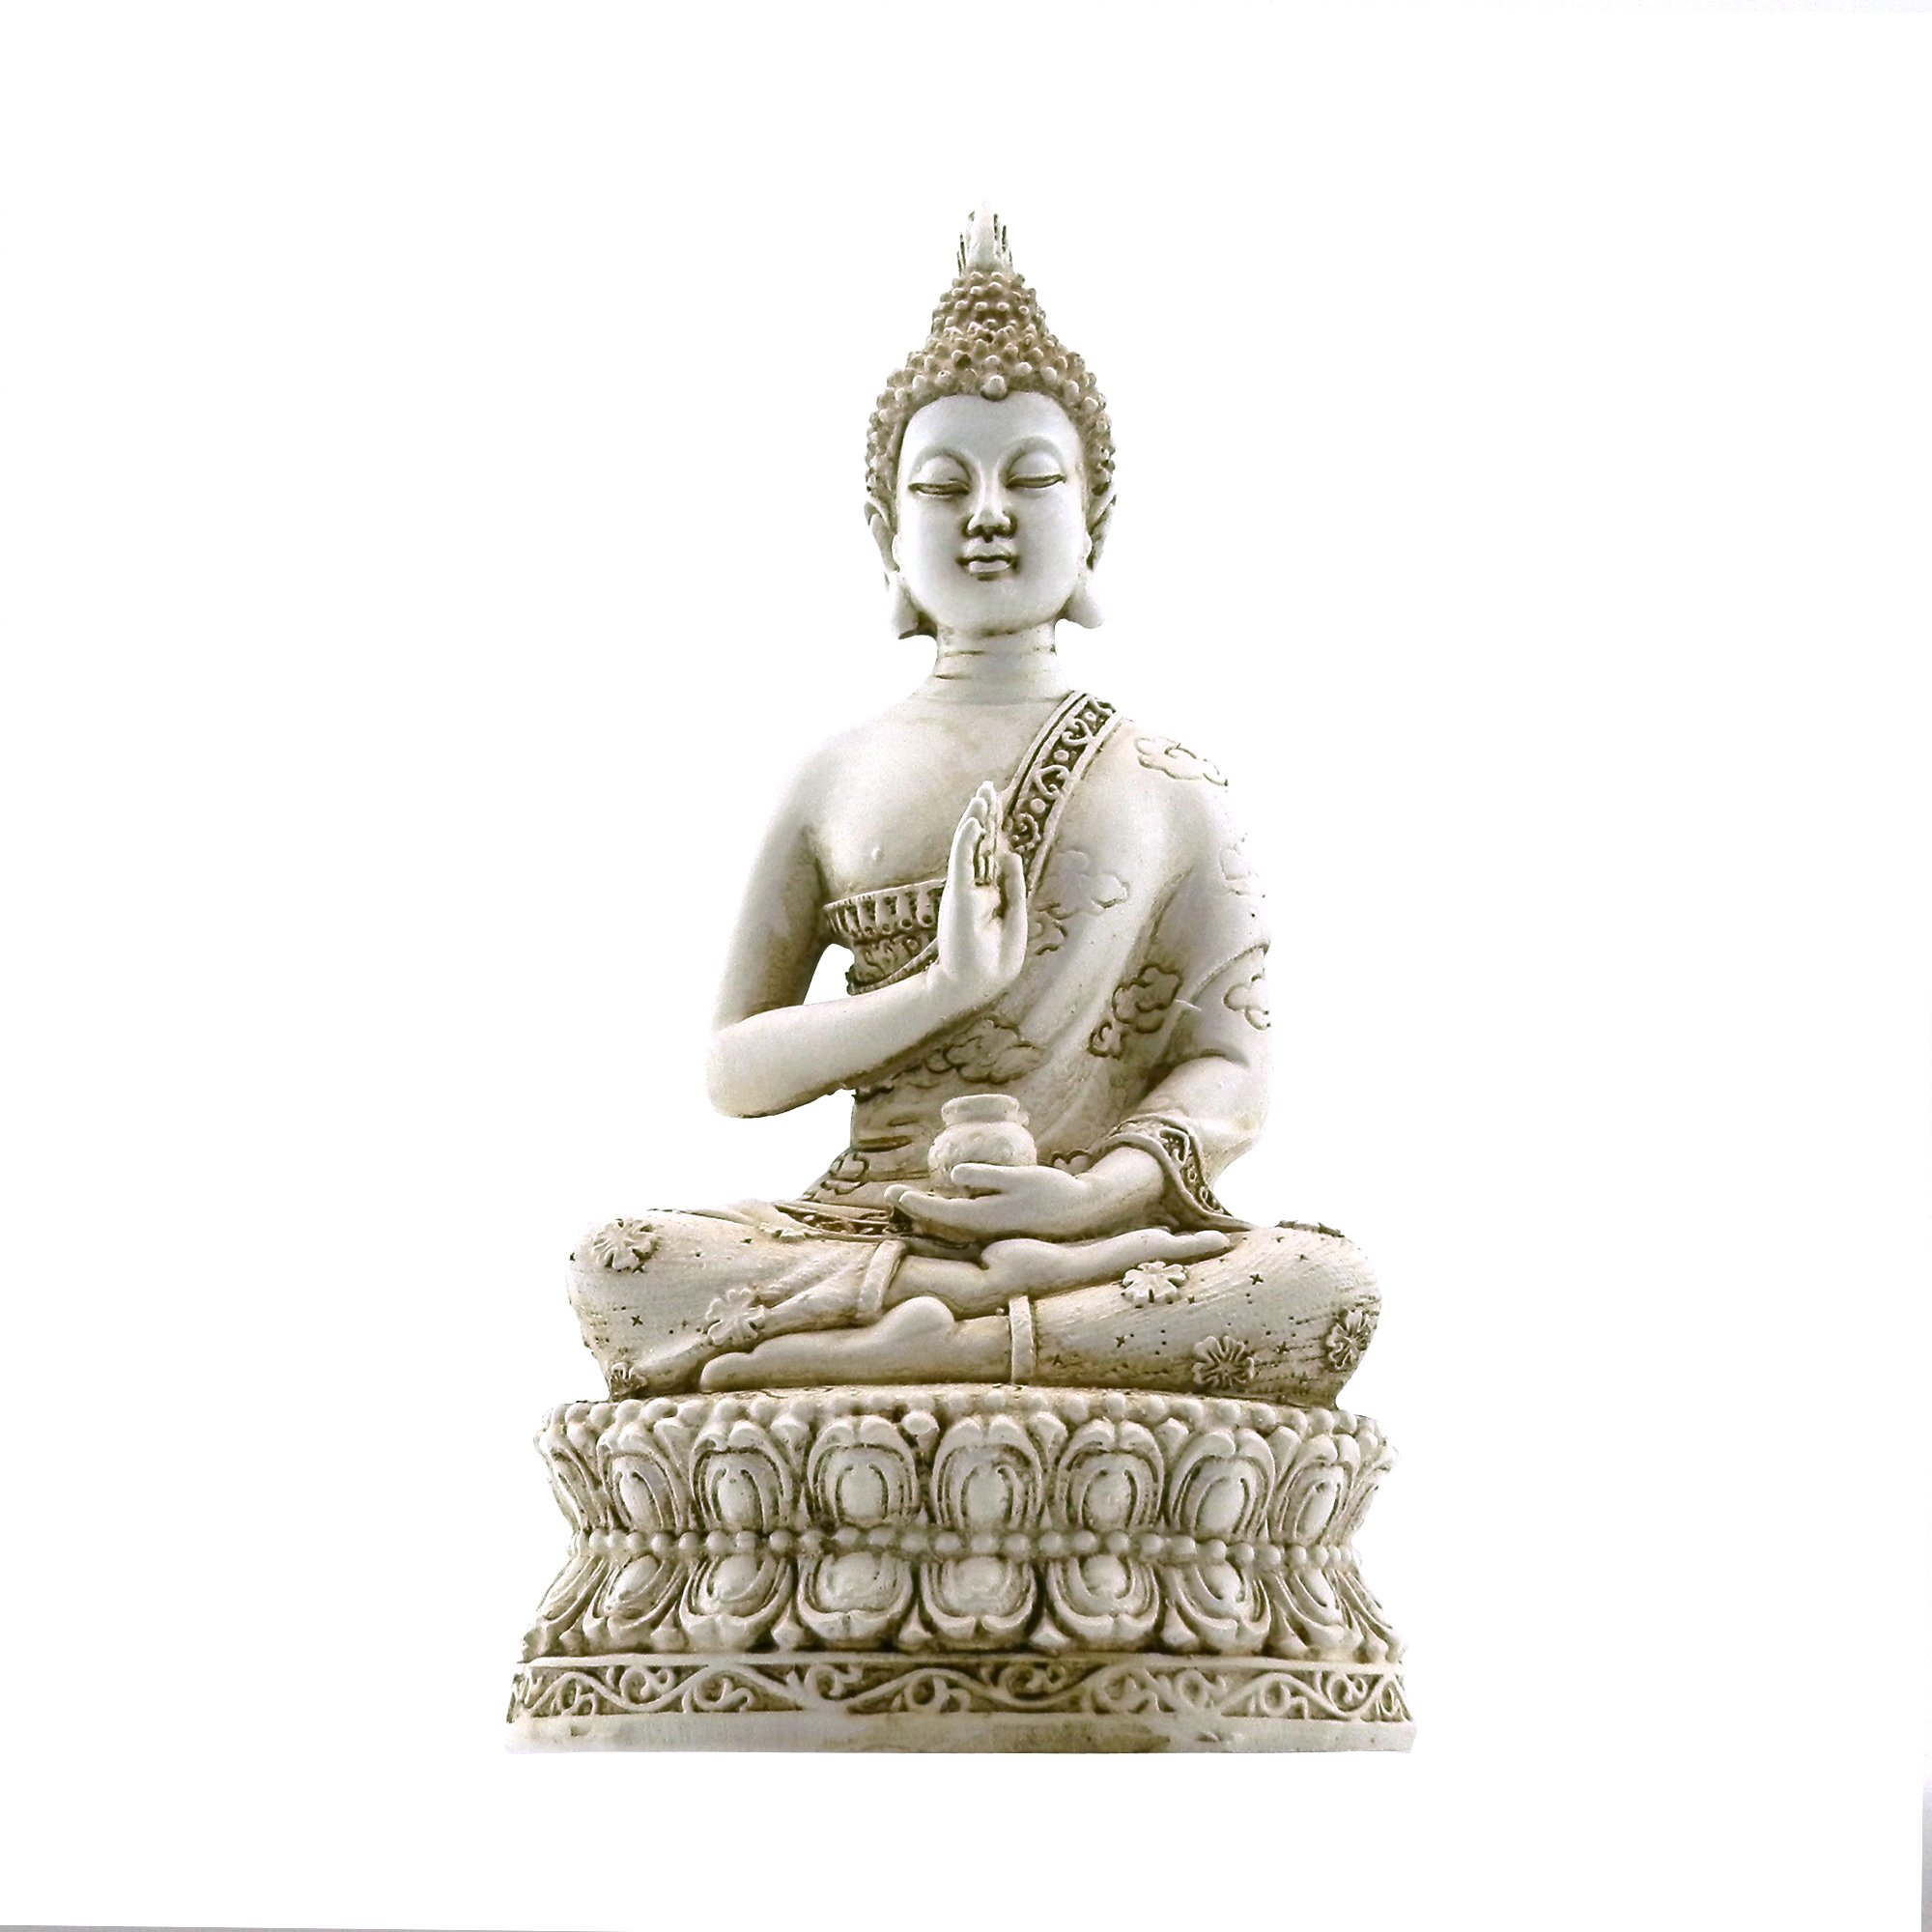 ornerx Thai Sitting Buddha Statue for Home Decor Ivory 6.7''